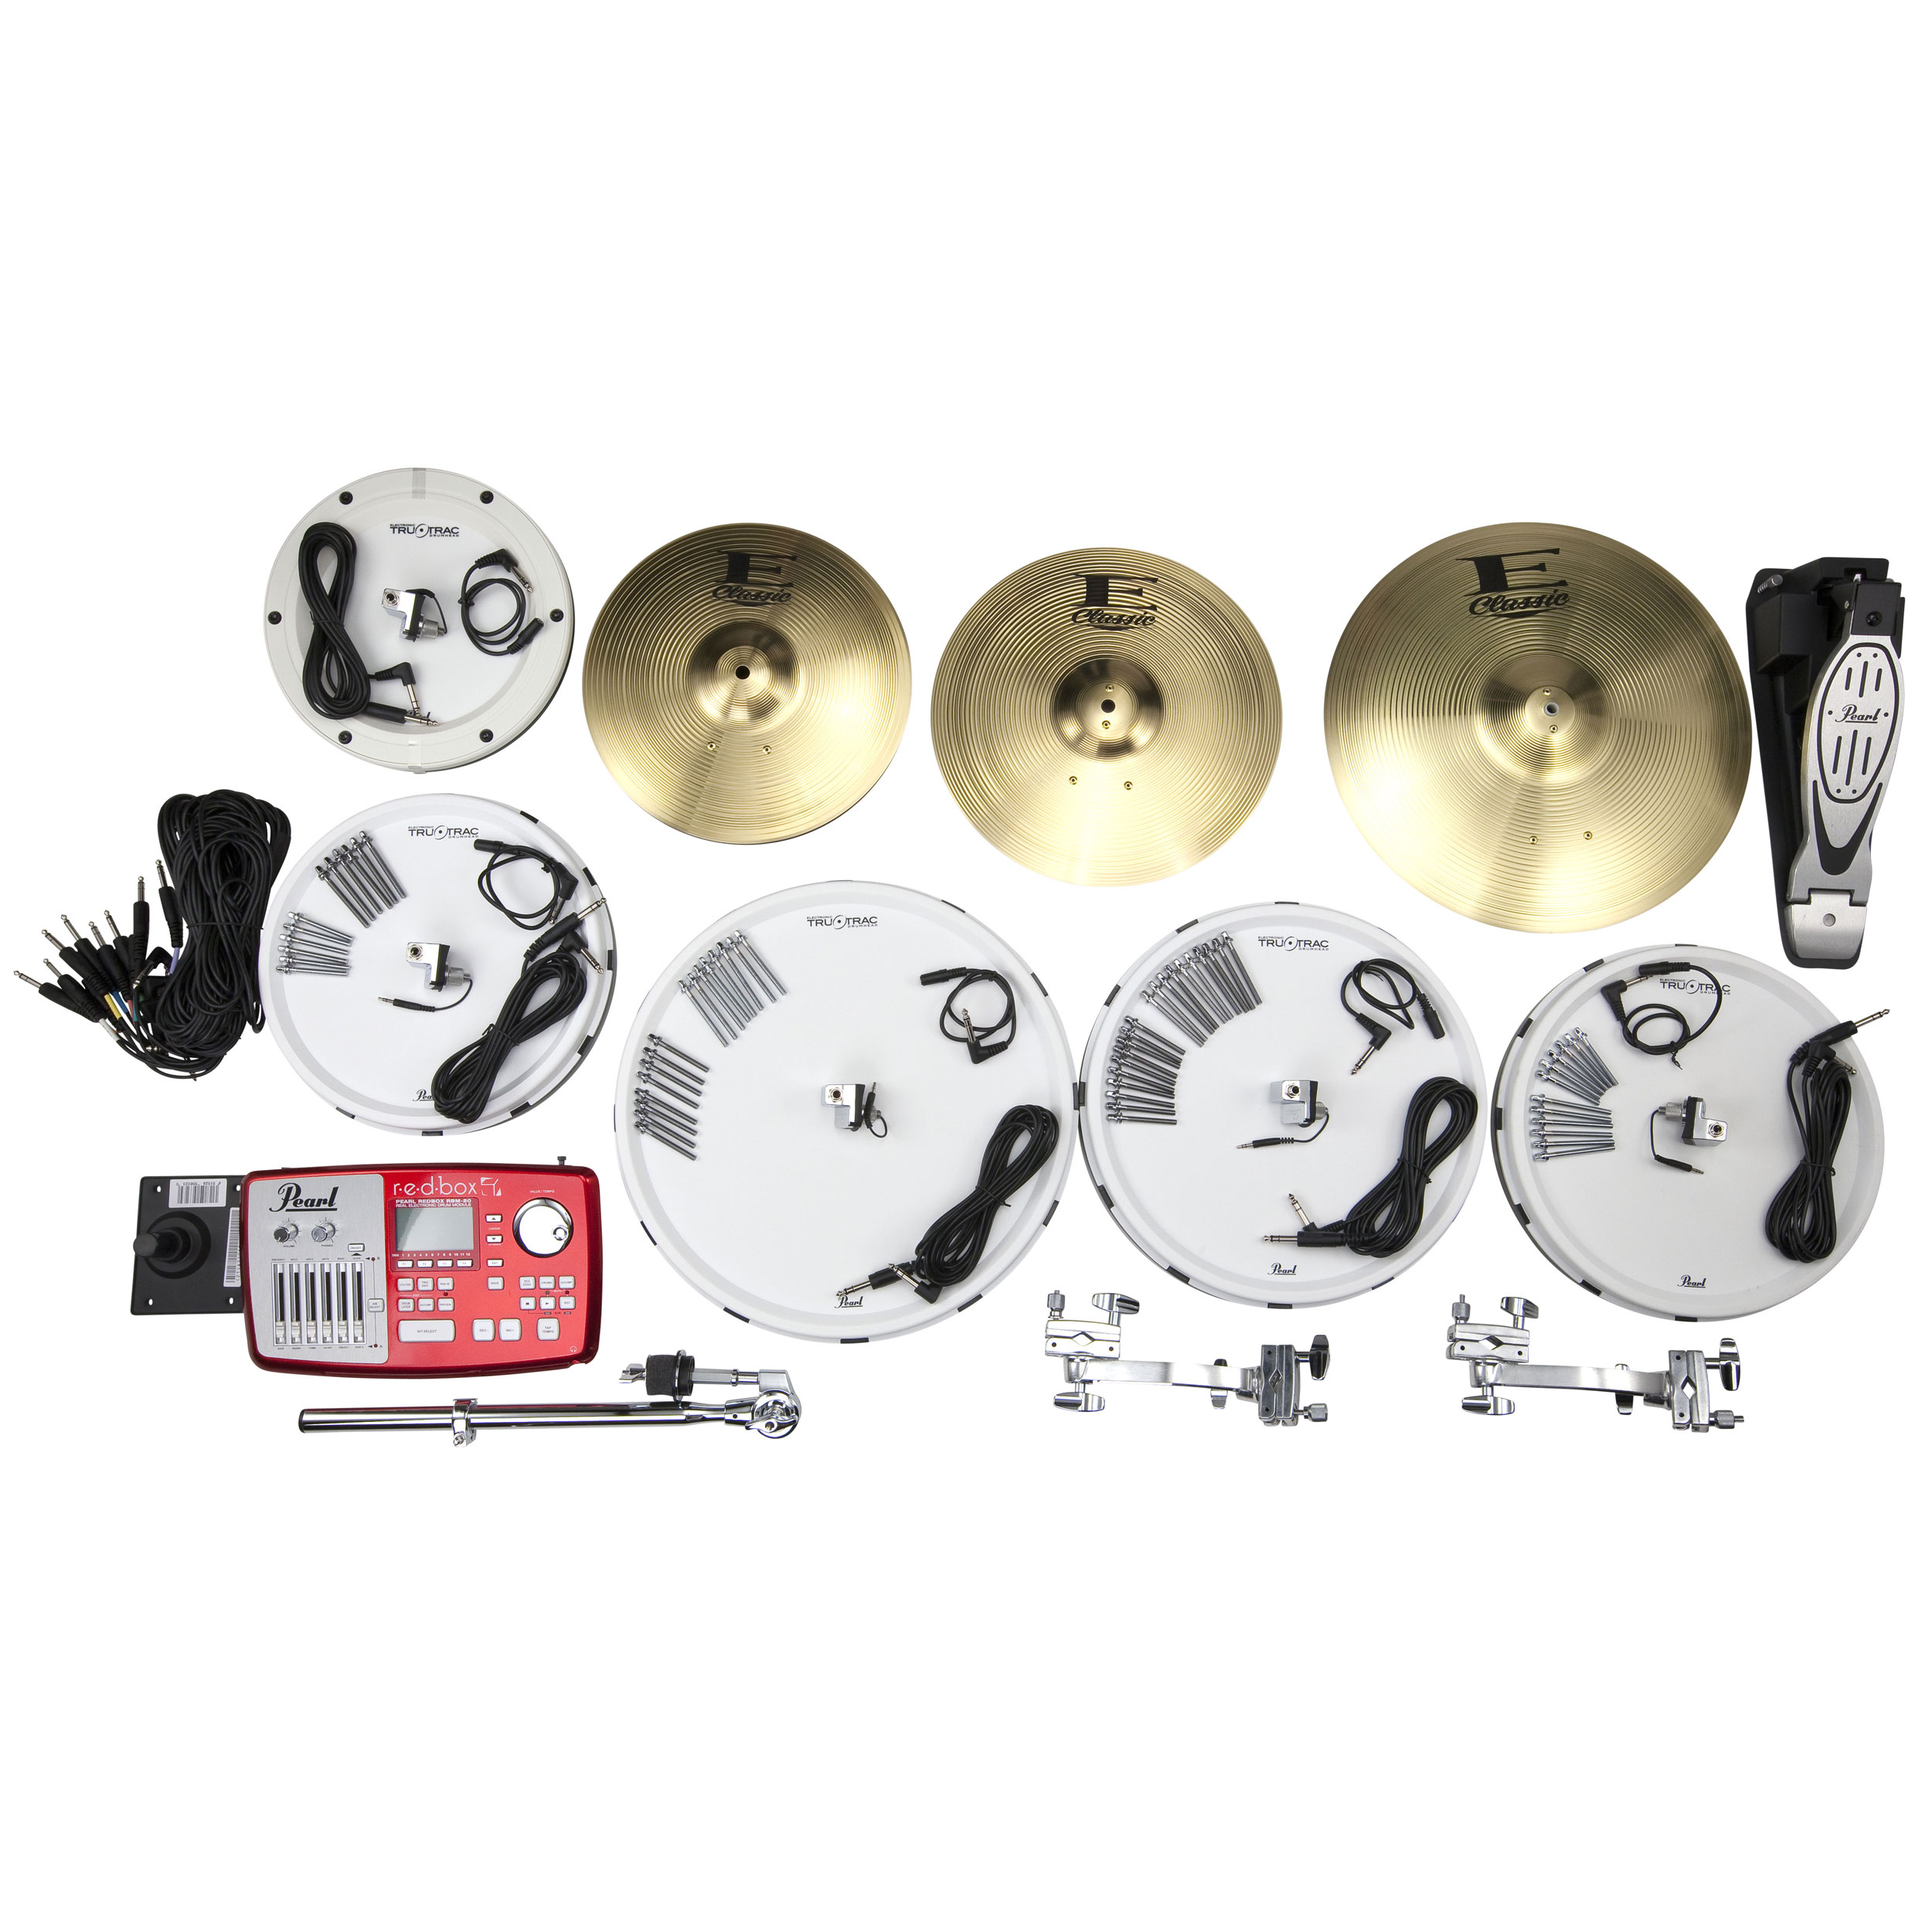 "Pearl EPAD-25 Electronic Drum Set with 12-13-14-16"" Tru-Trac Heads, Bass Pad, Module & Metal Cymbals"